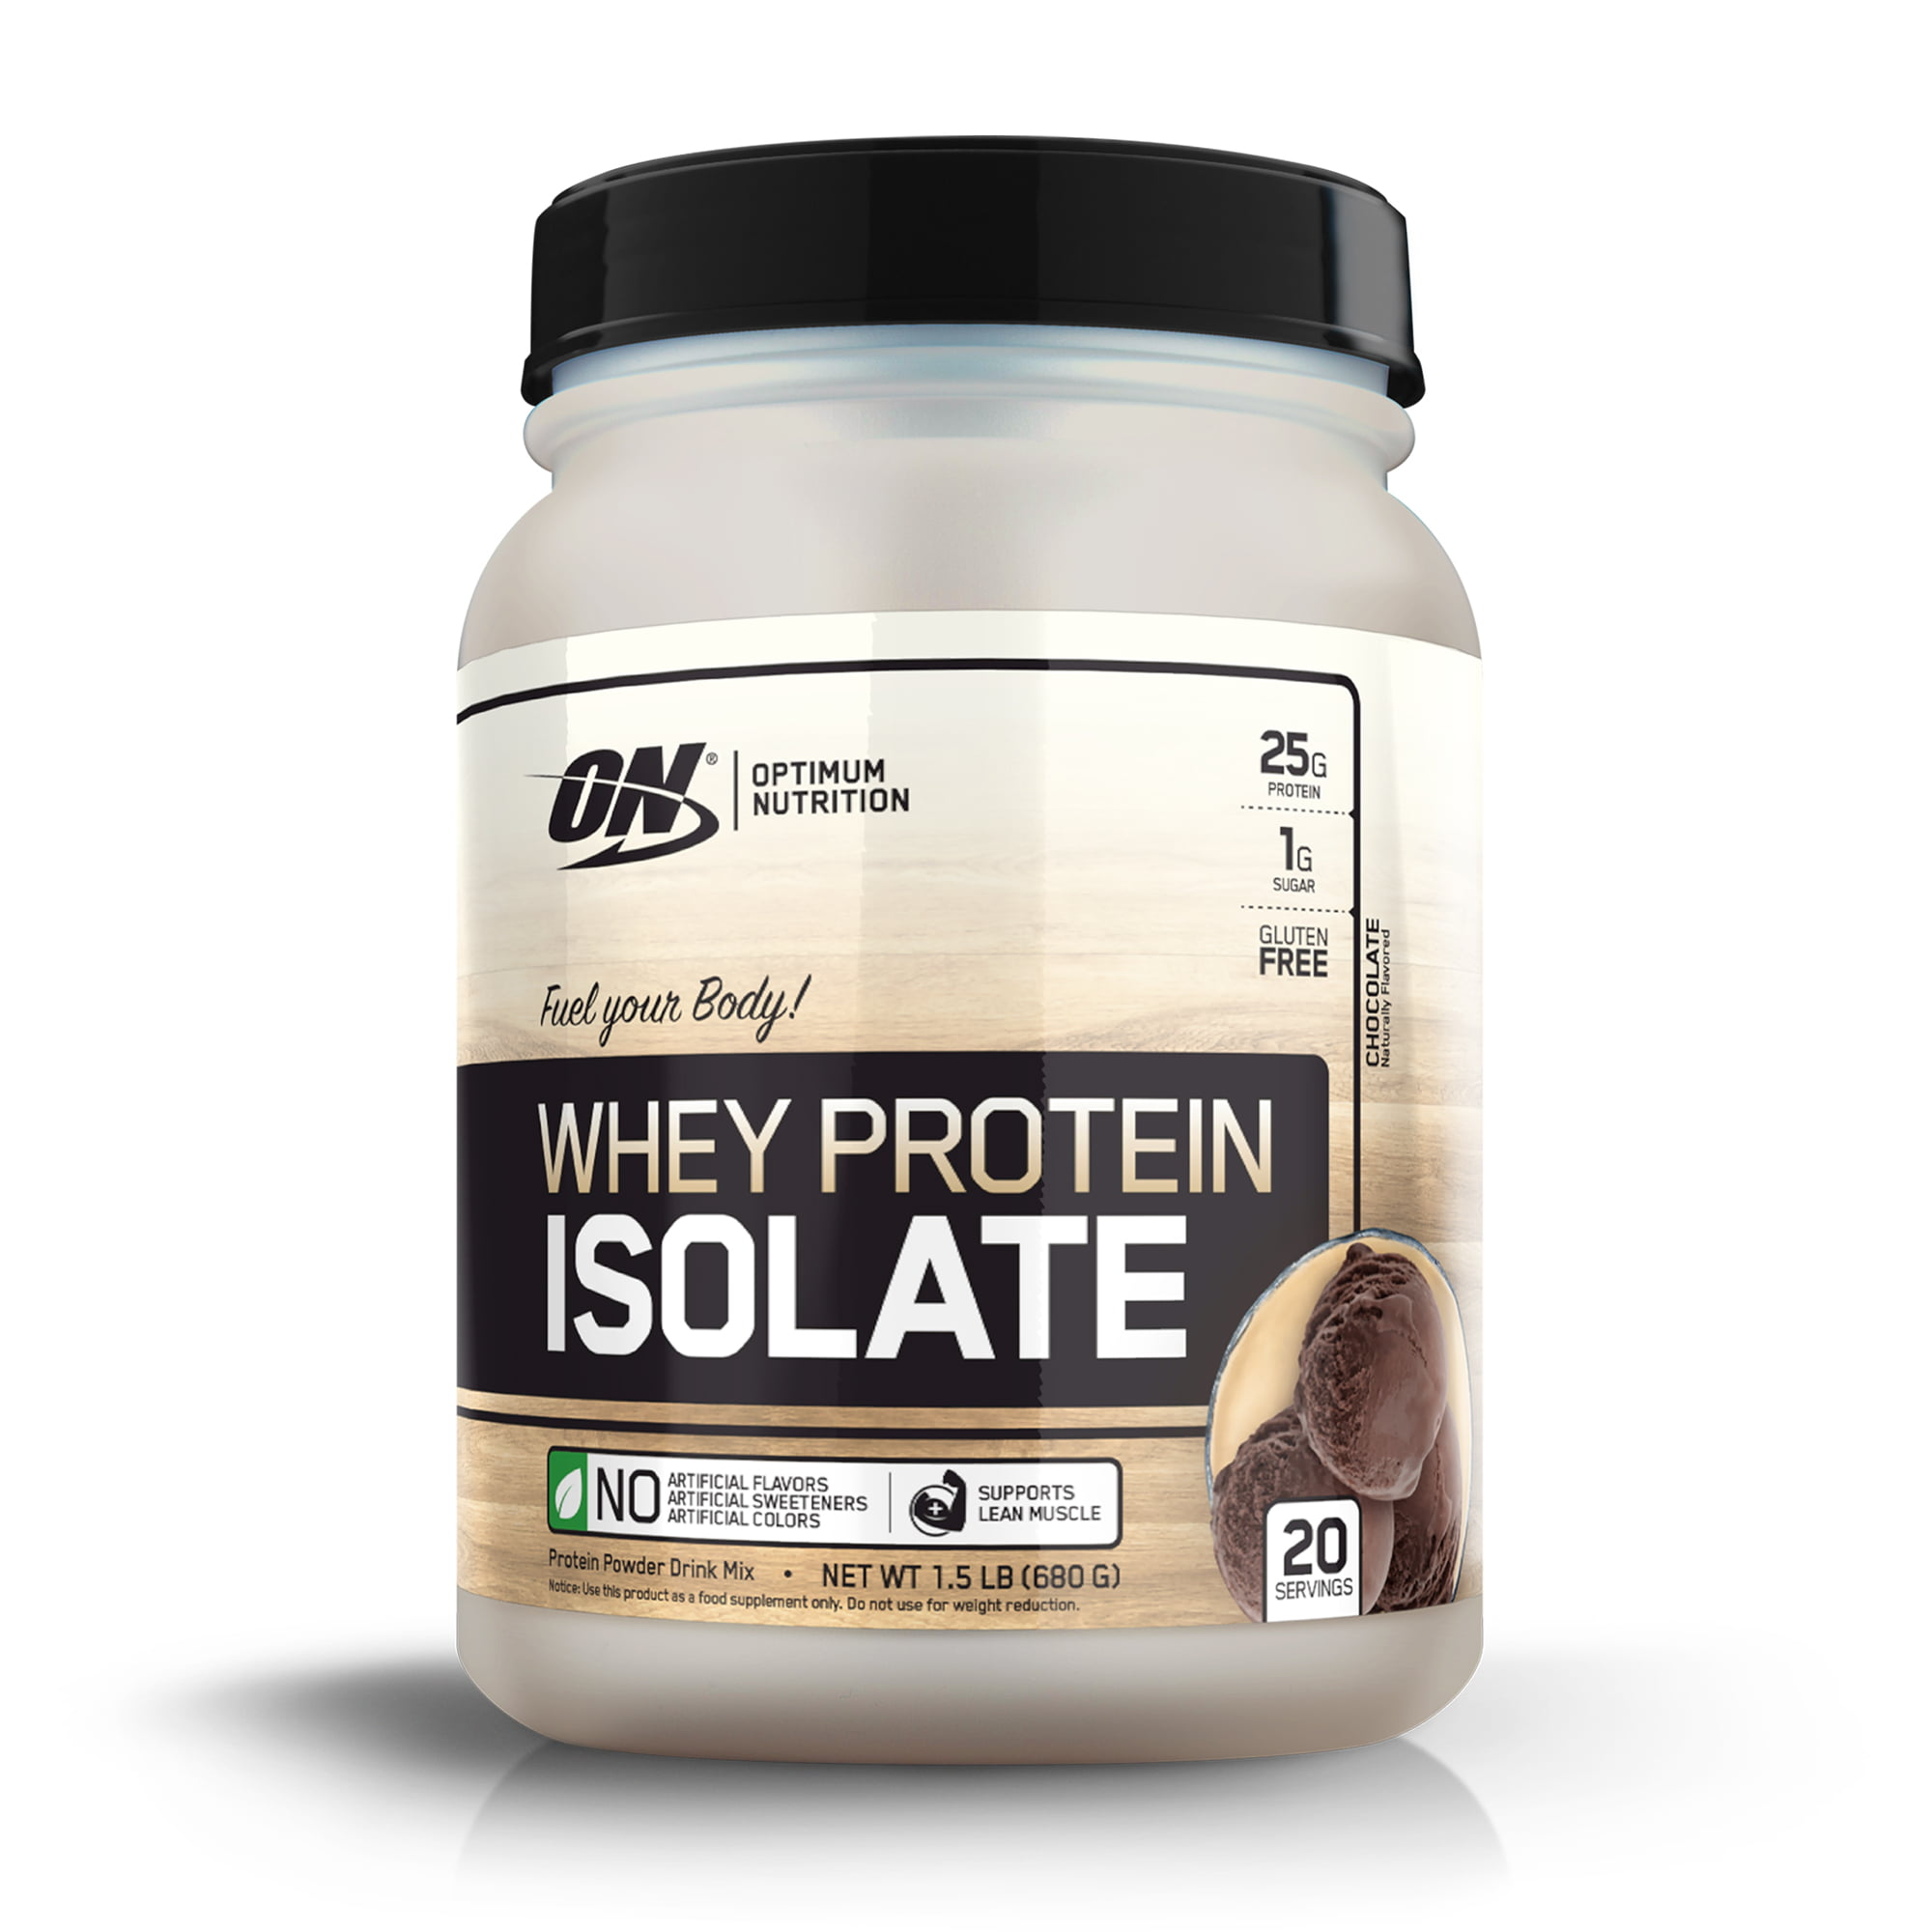 Optimum Nutrition Whey Protein Isolate, Chocolate, 25g Protein, 20 Servings - Walmart.com